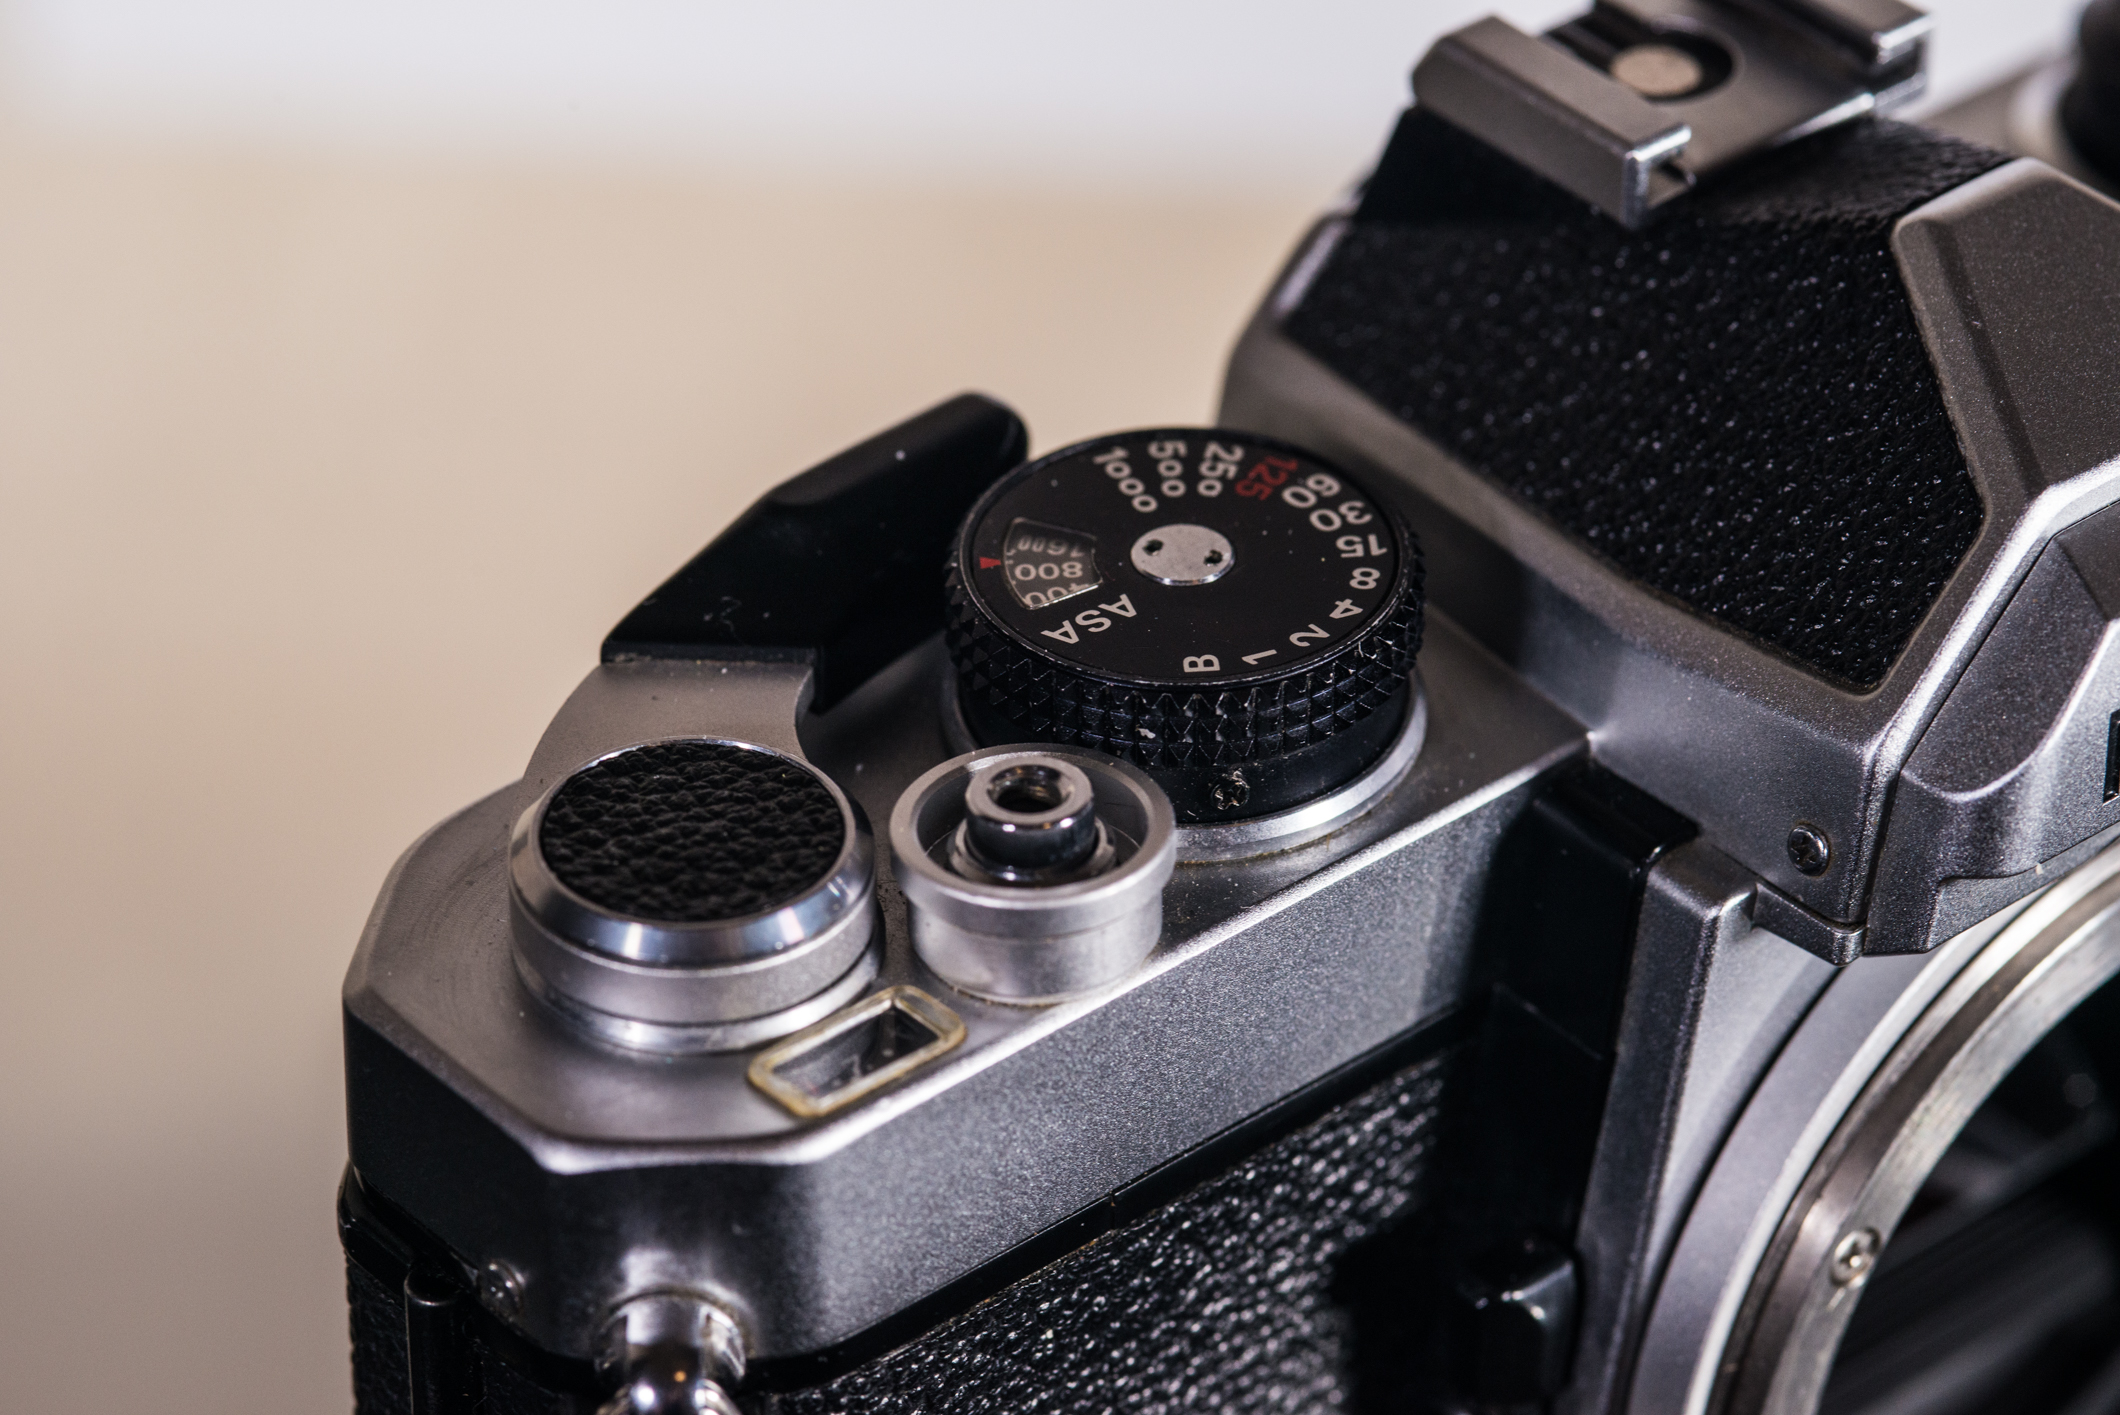 The FM's main controls. Flash X-sync, marked in red, is limited to 1/125. The film advance stopper is hidden behind the shutter speed dial.